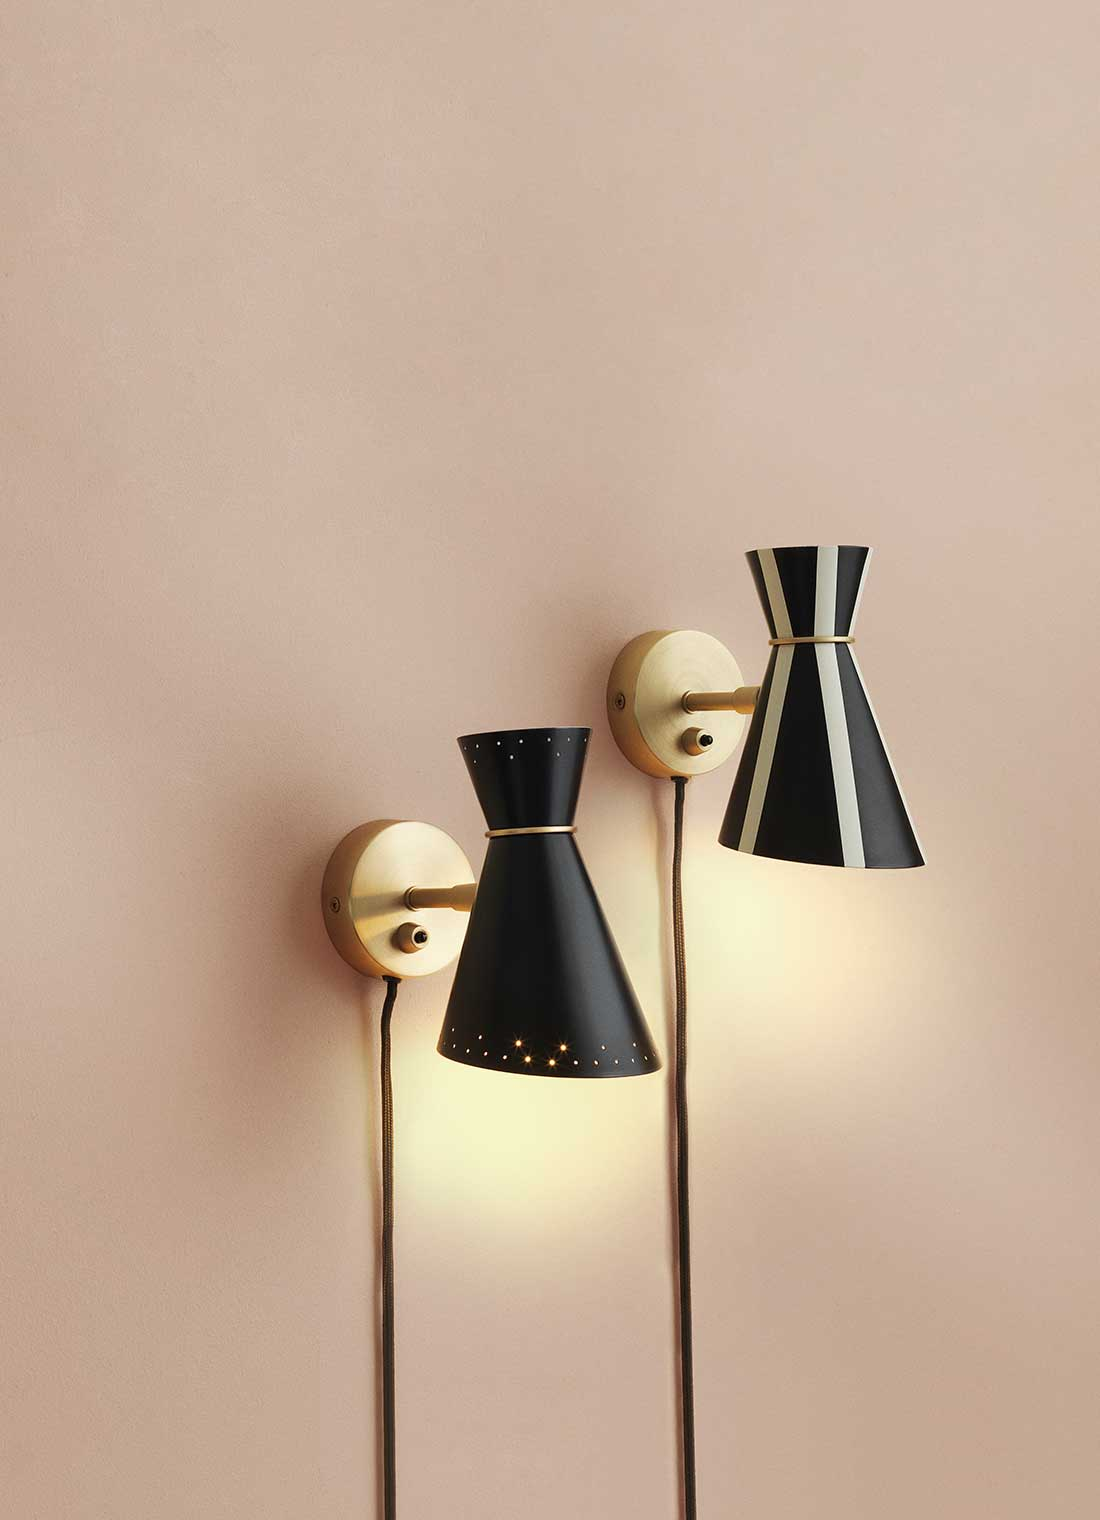 Bloom wall lamp in stripes and black colour